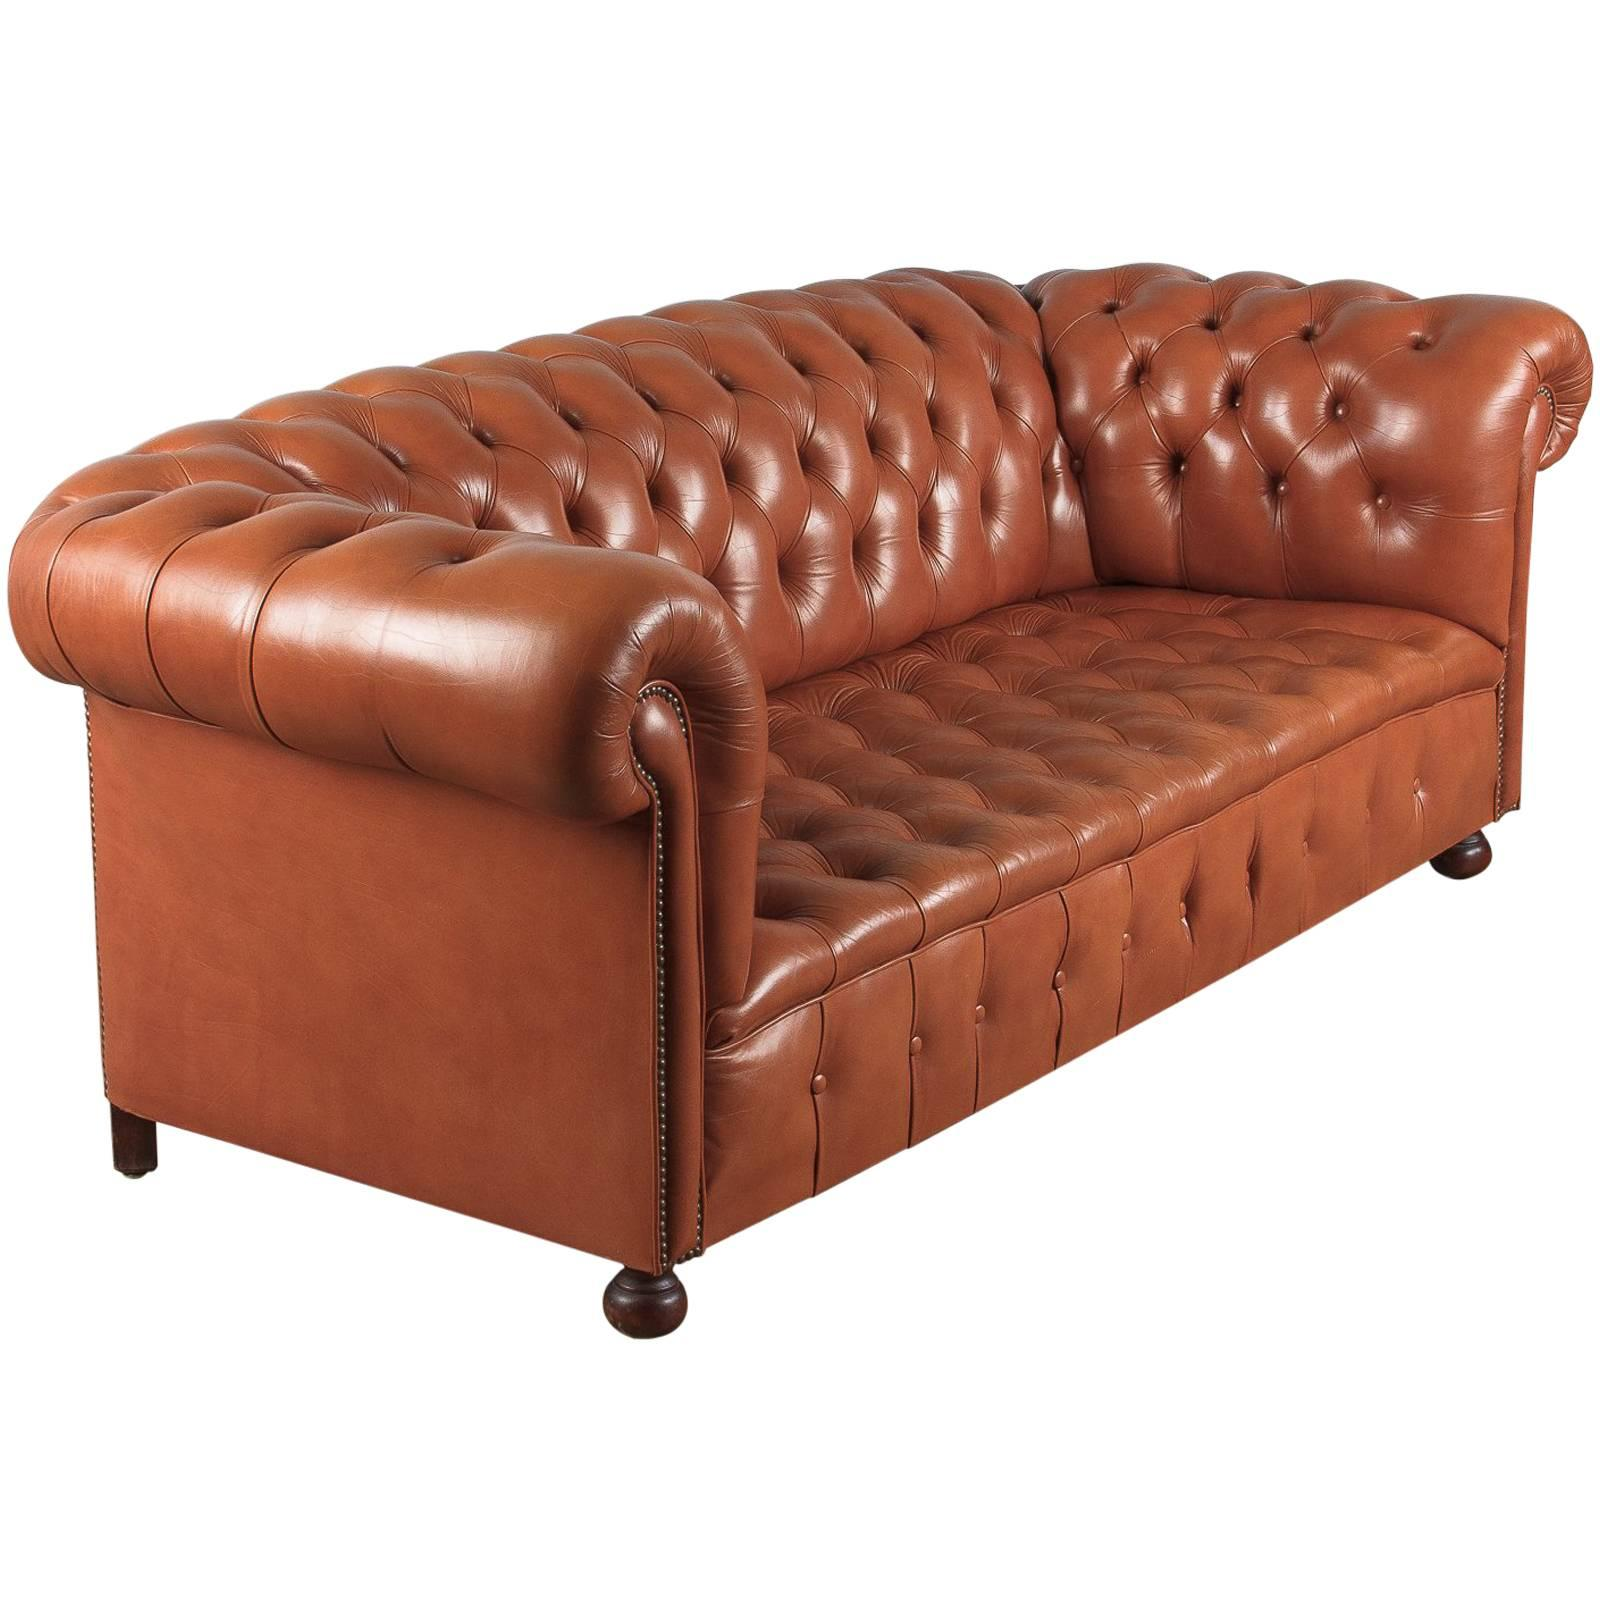 Merveilleux Vintage English Leather Chesterfield Sofa, 1960s